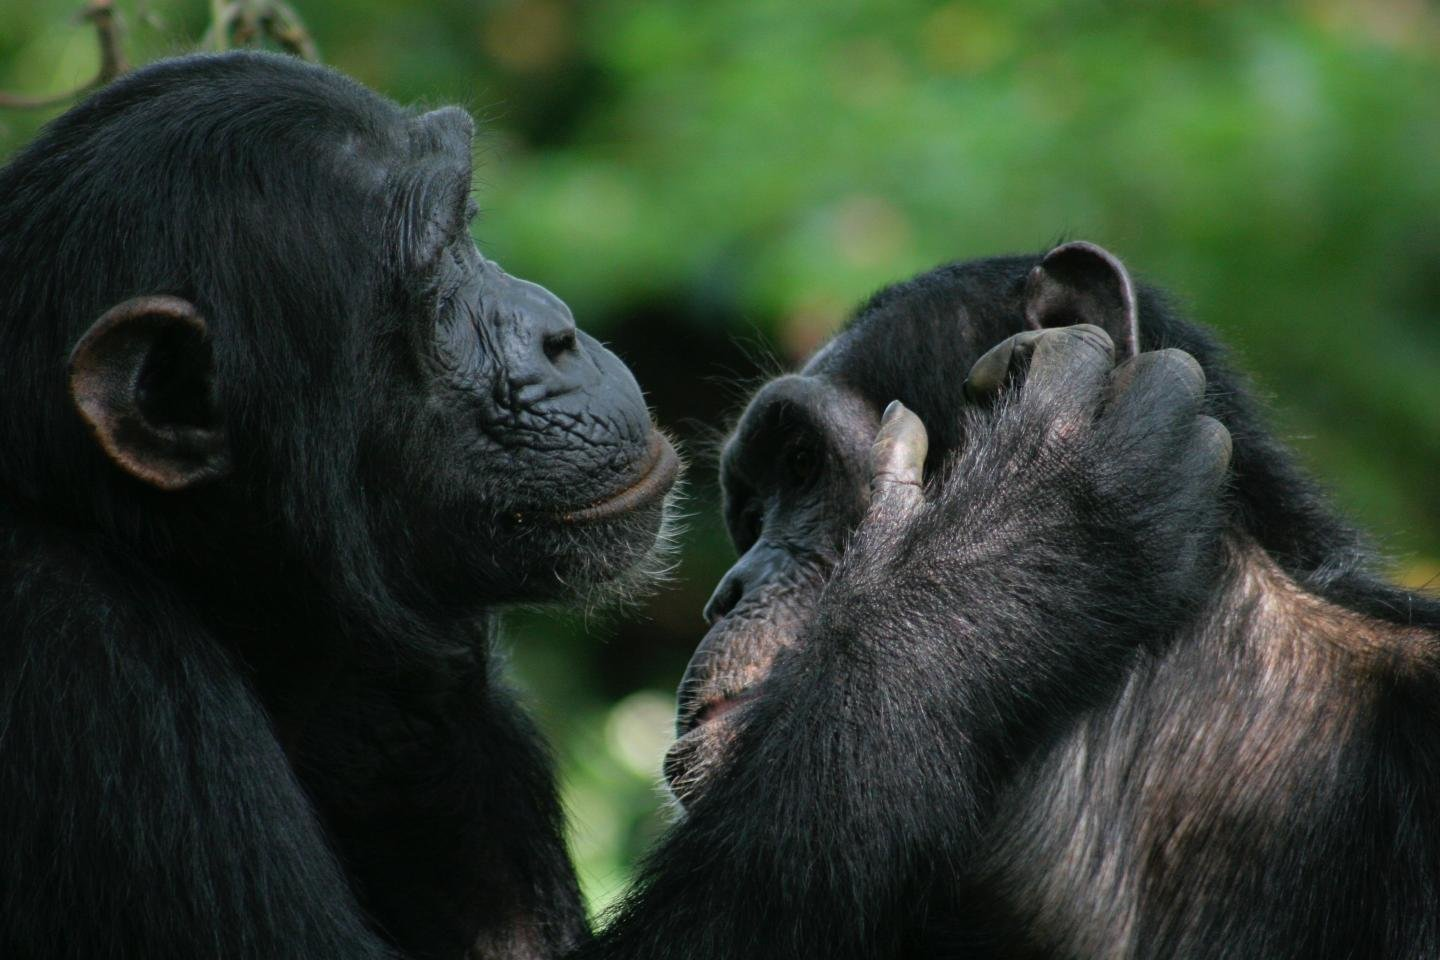 Bonobo And Chimpanzee Gestures Share Many Meanings